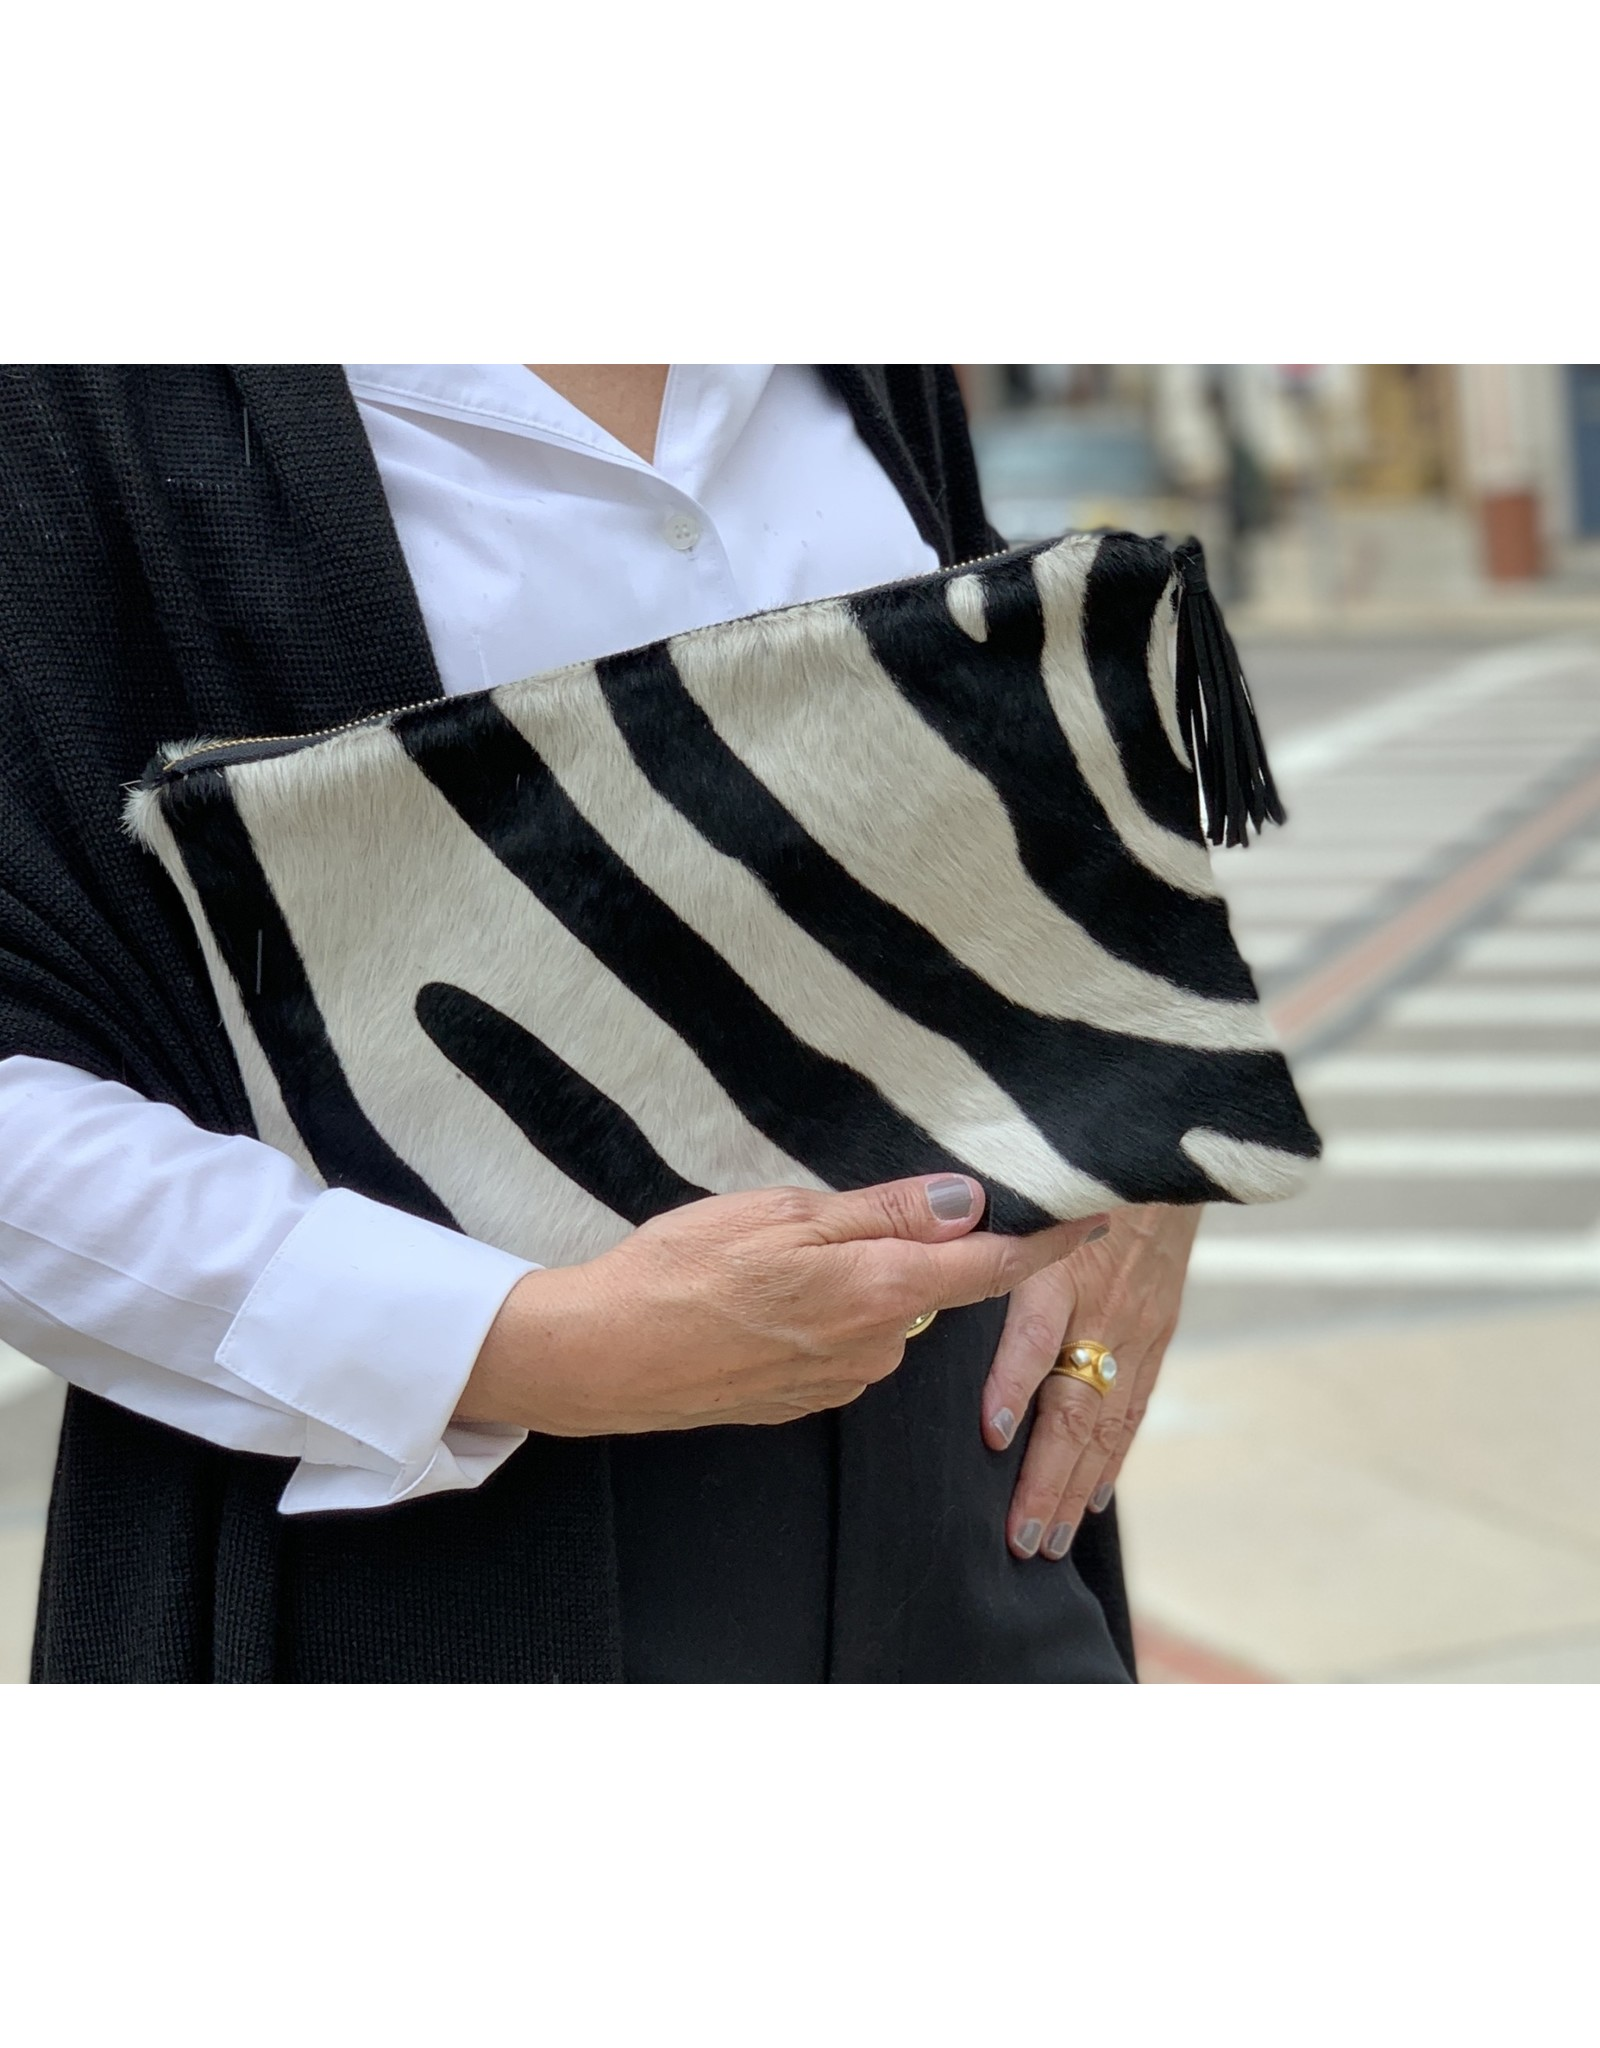 Parker & Hyde The Carrie Clutch by Parker & Hyde